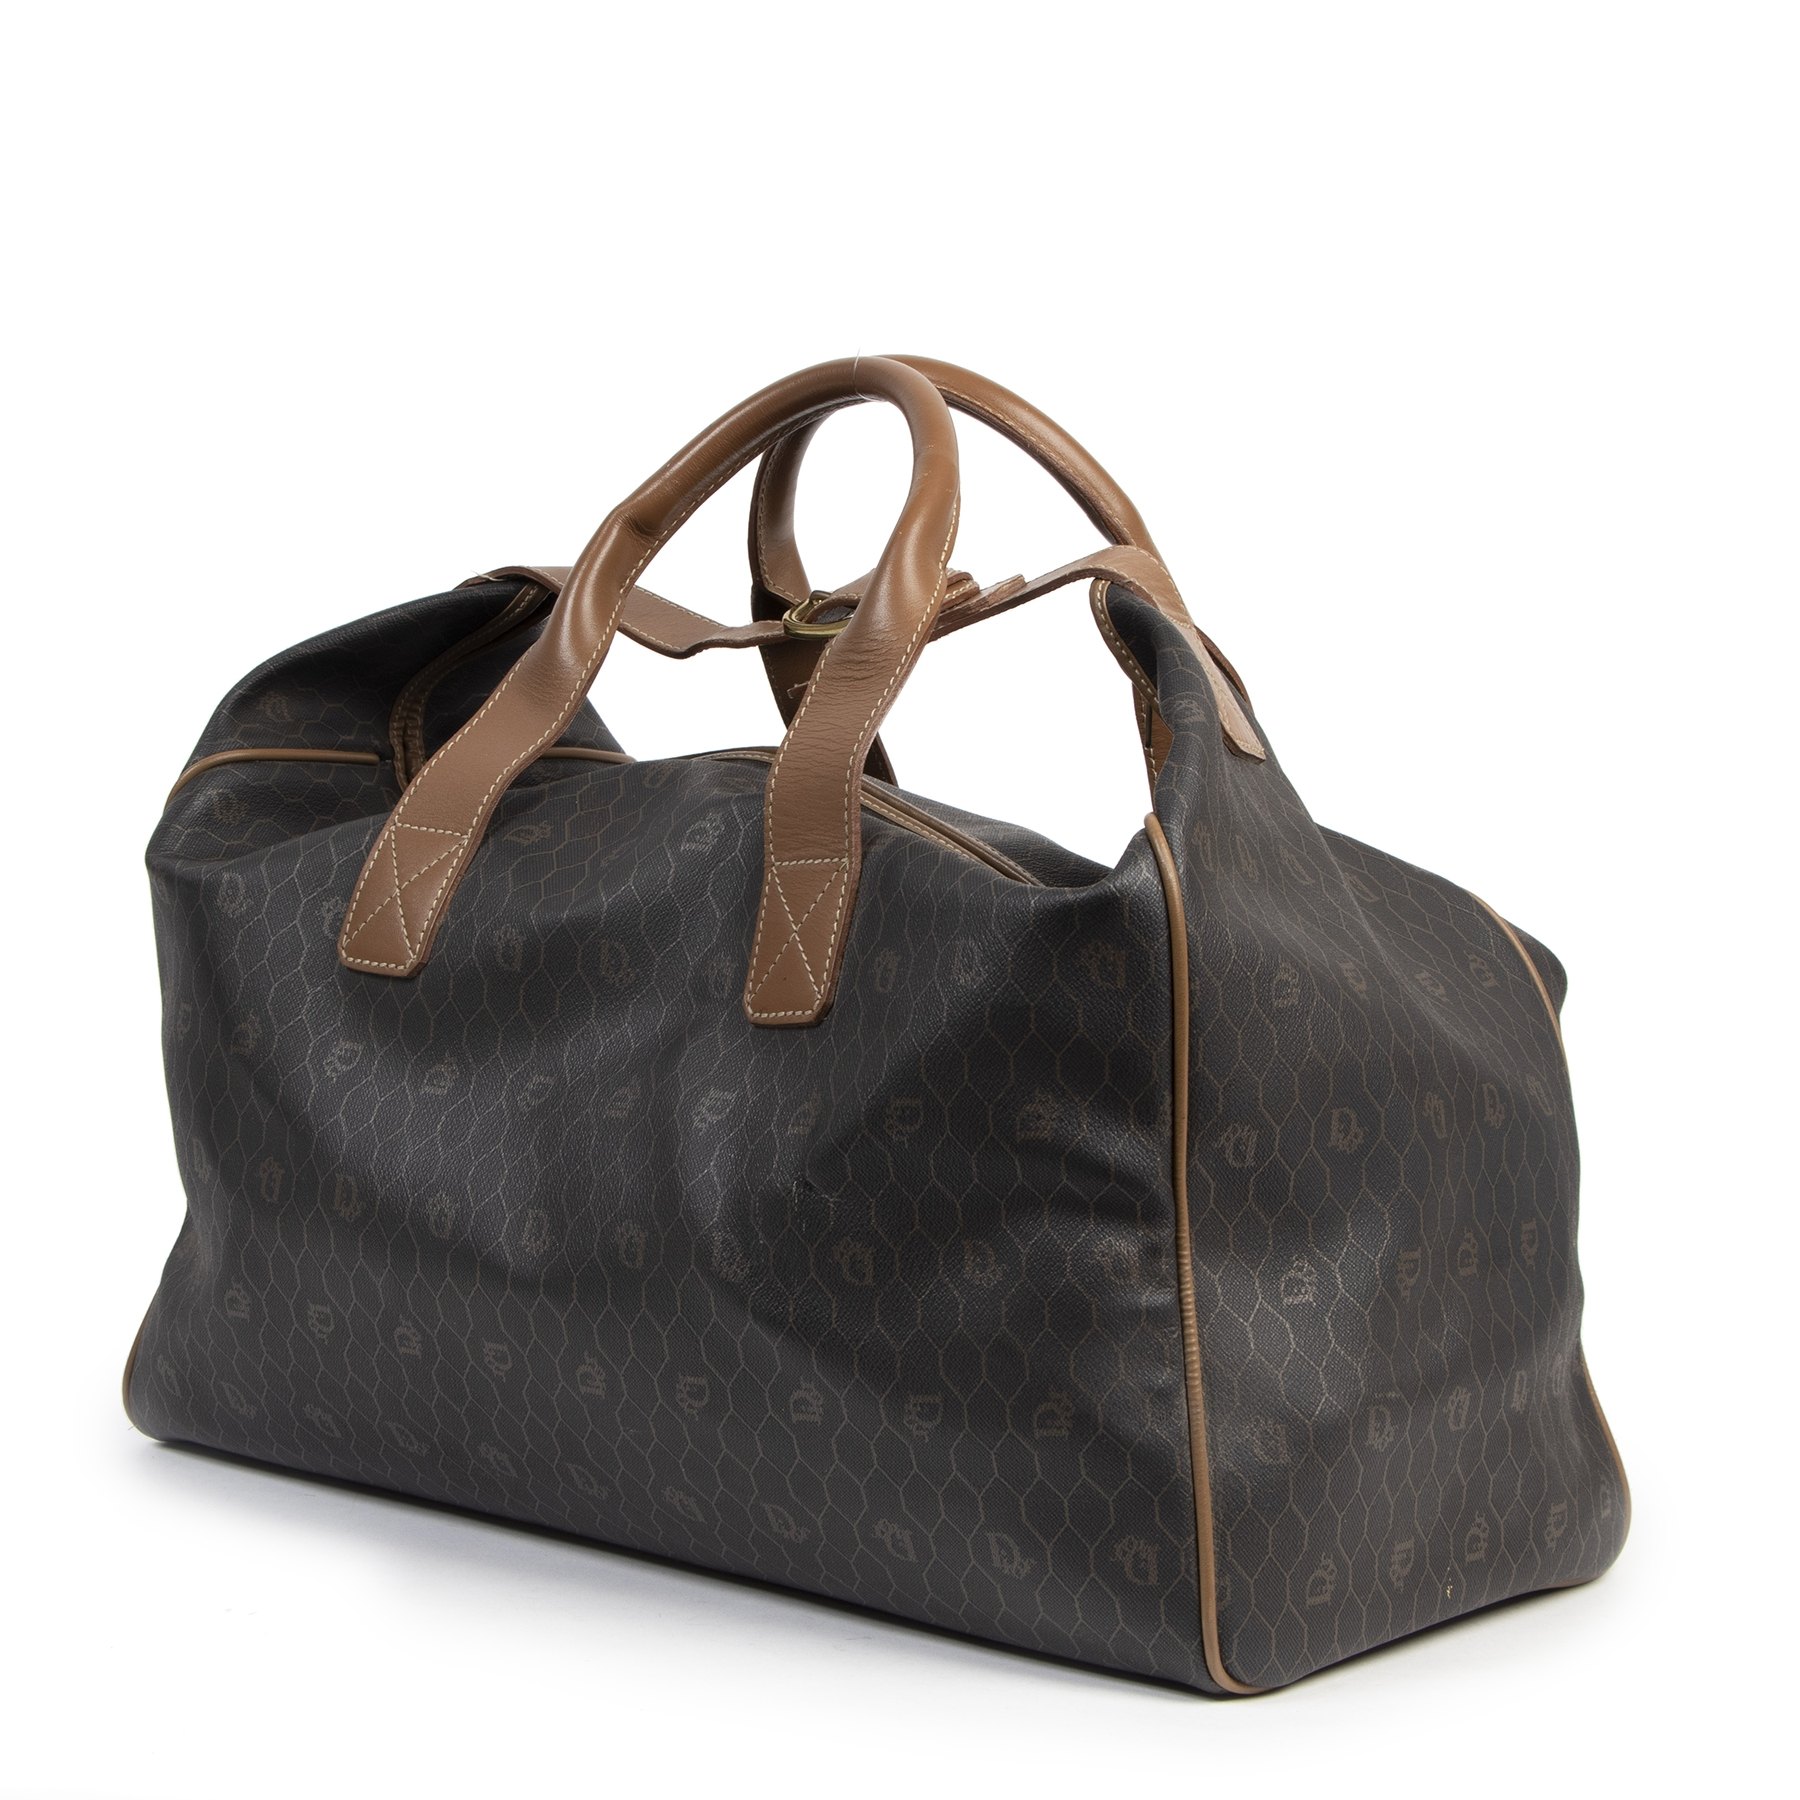 Authentieke tweedehands vintage Dior Grey Honeycomb Travel Bag koop online webshop LabelLOV